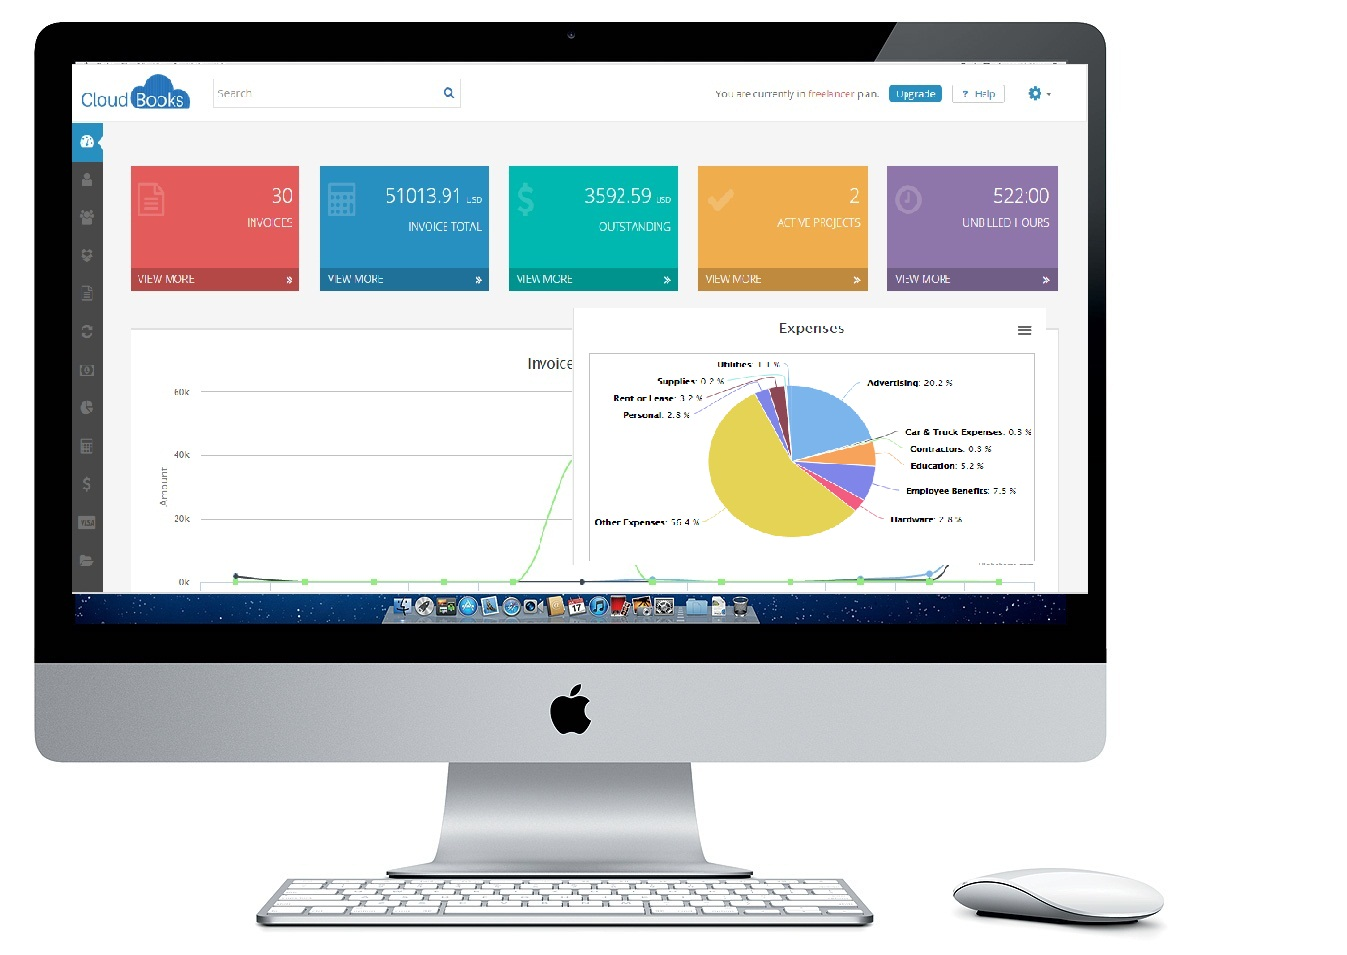 Invoice Management Software Invoice Management System For Small - Invoice management software for small business